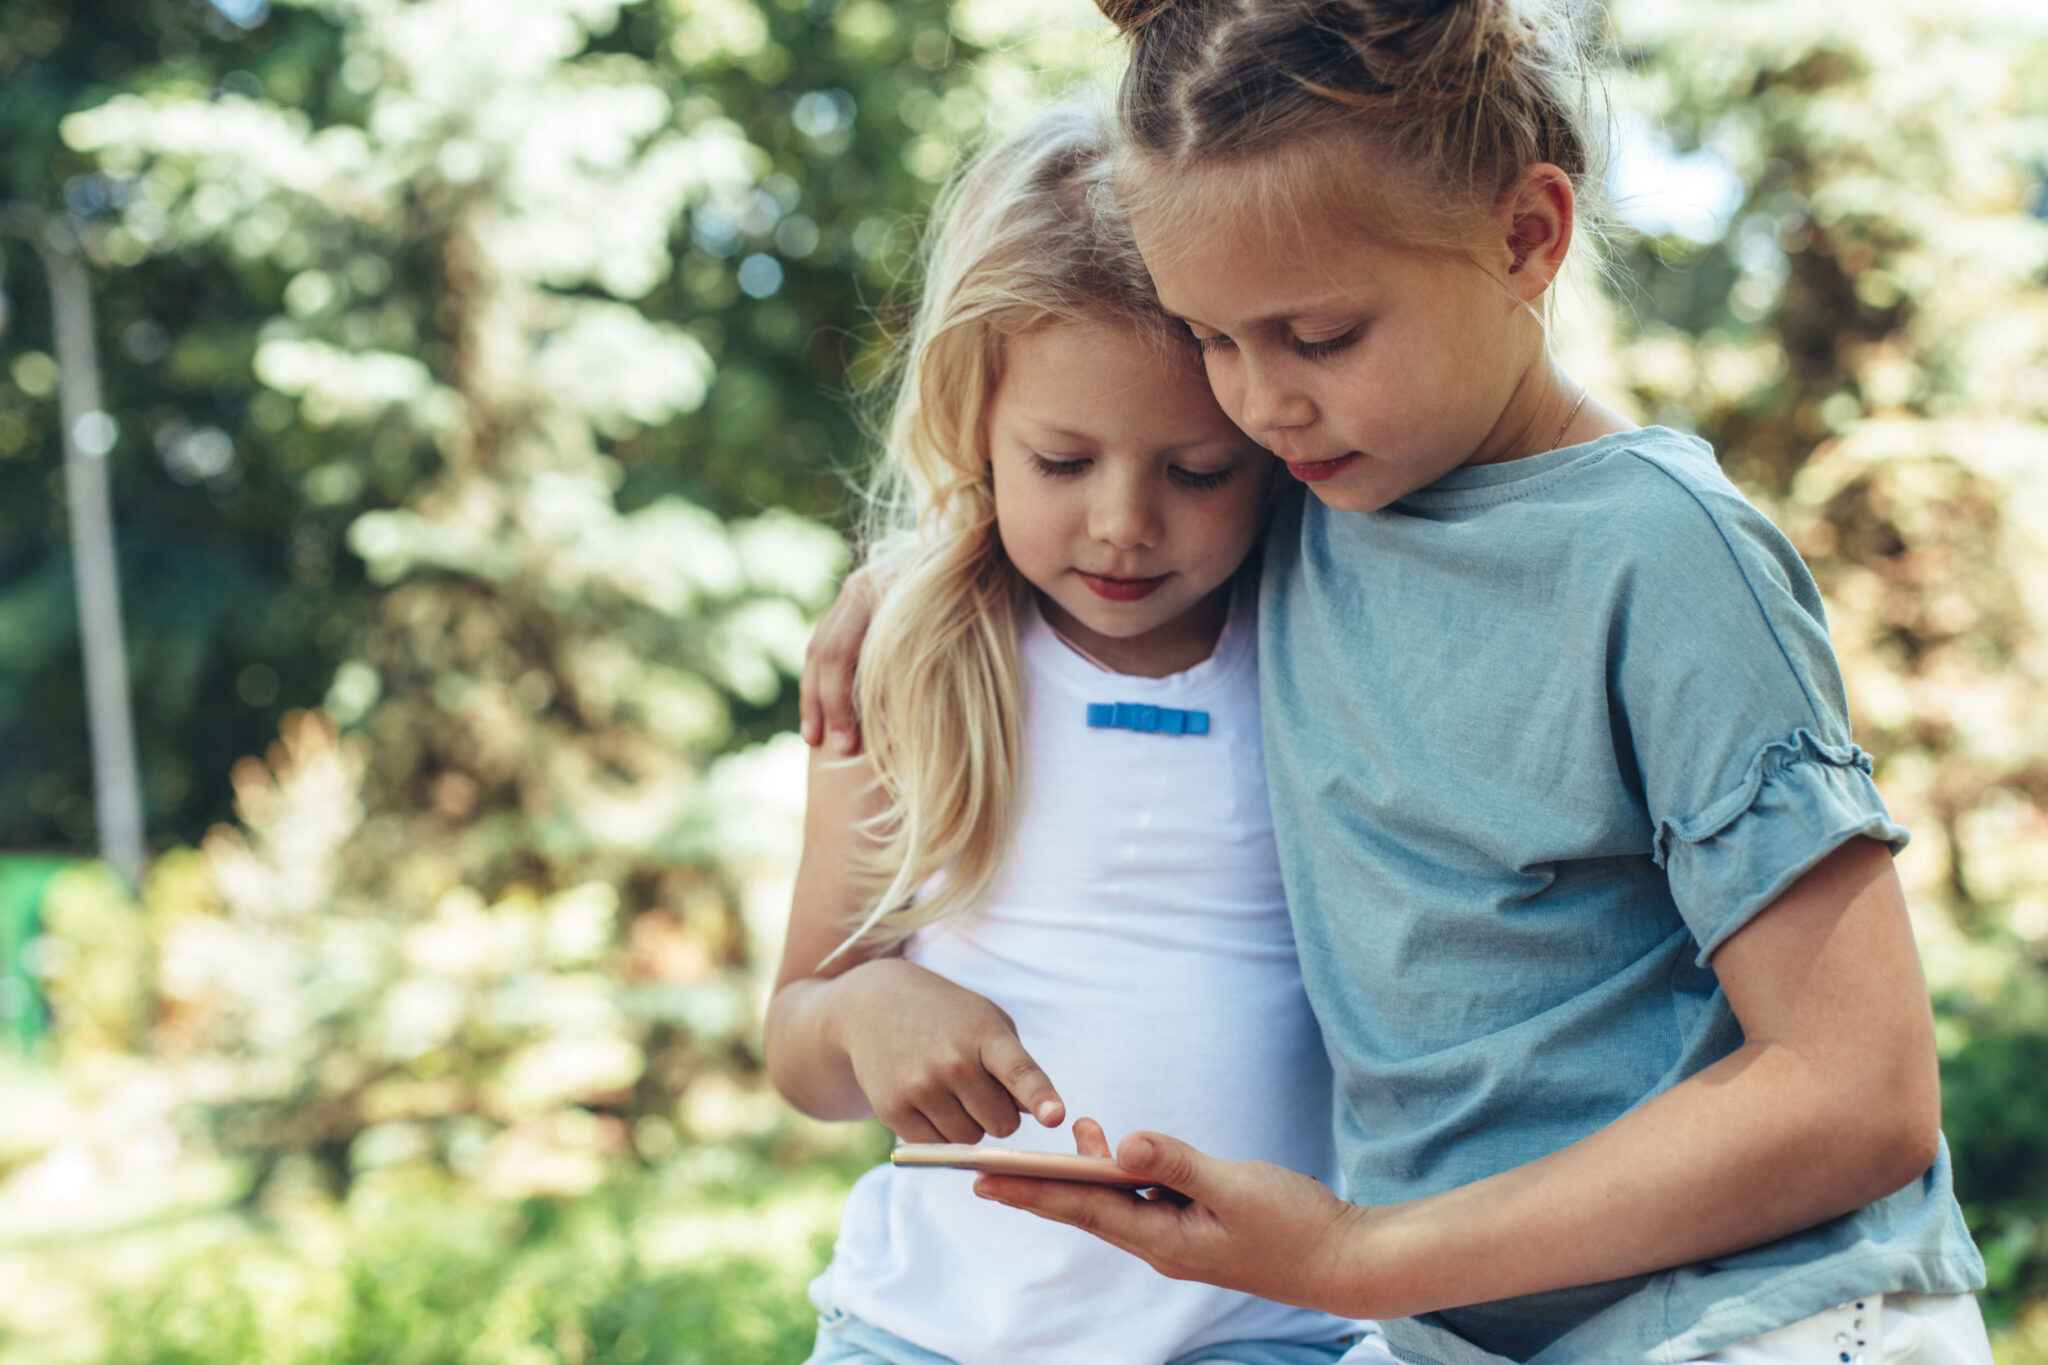 Waist up portrait of small girls standing in cuddles with phone in hands. They are playing games on smartphone peacefully. Copy space in left side